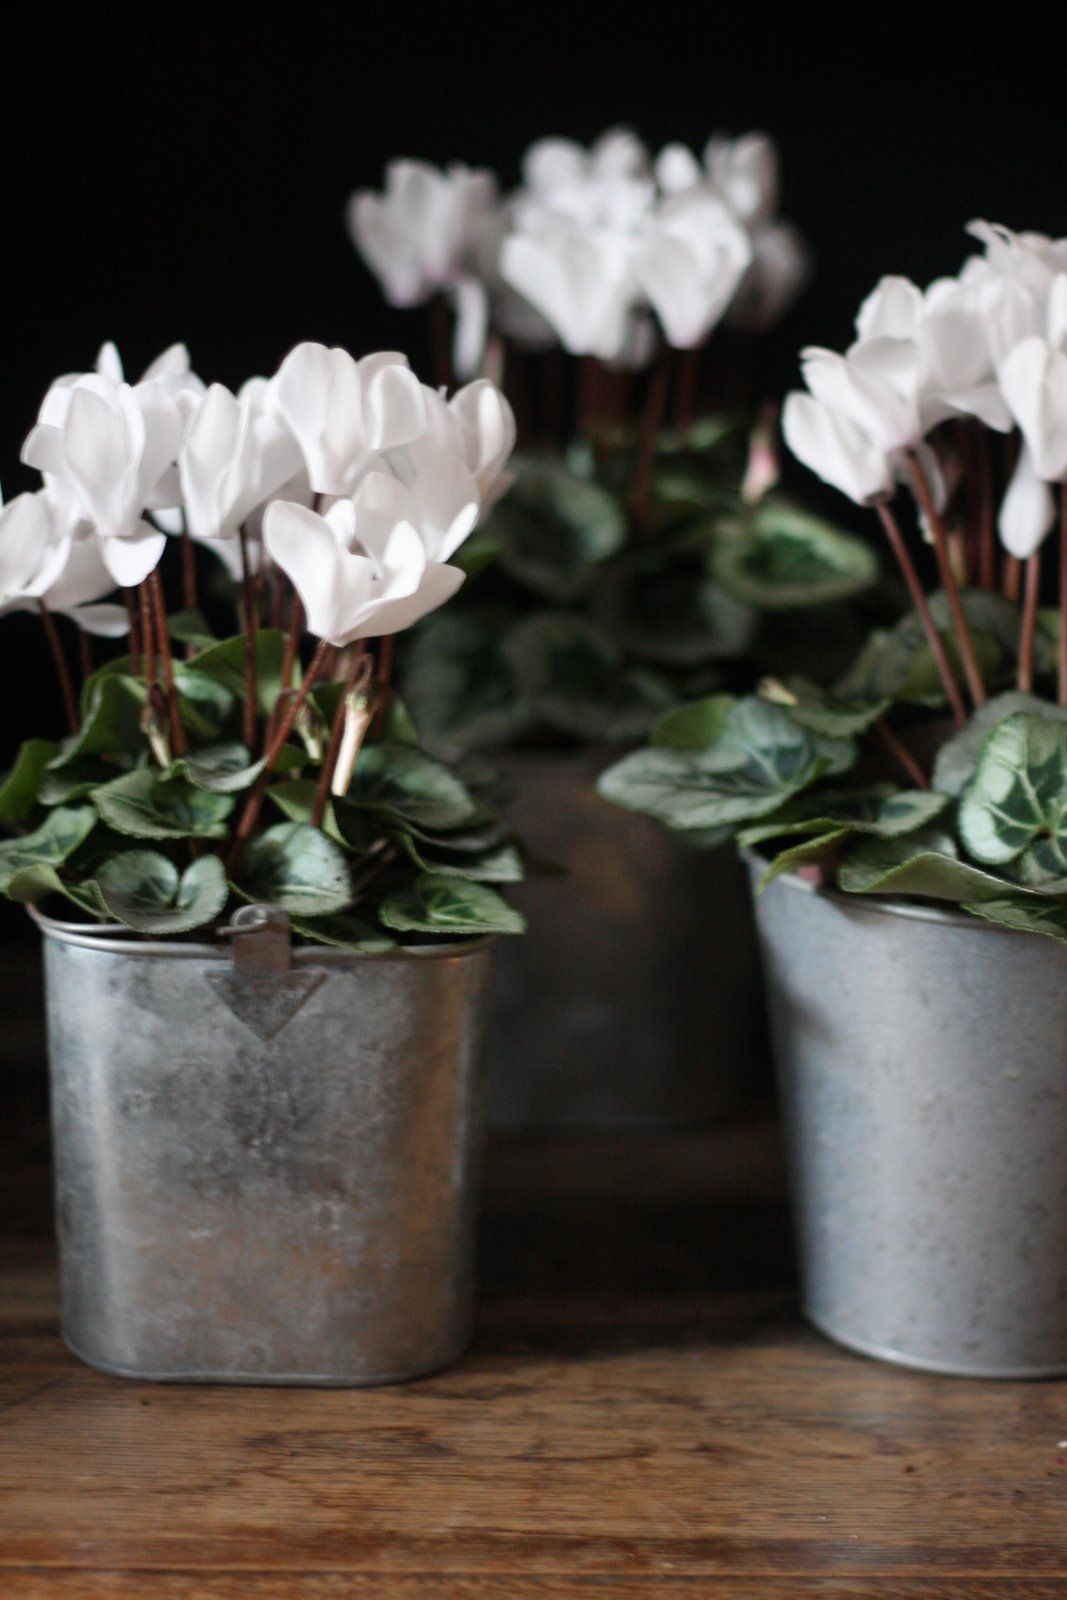 Cyclamen Care How To Take Care Of Cyclamen Plants Virgin mary